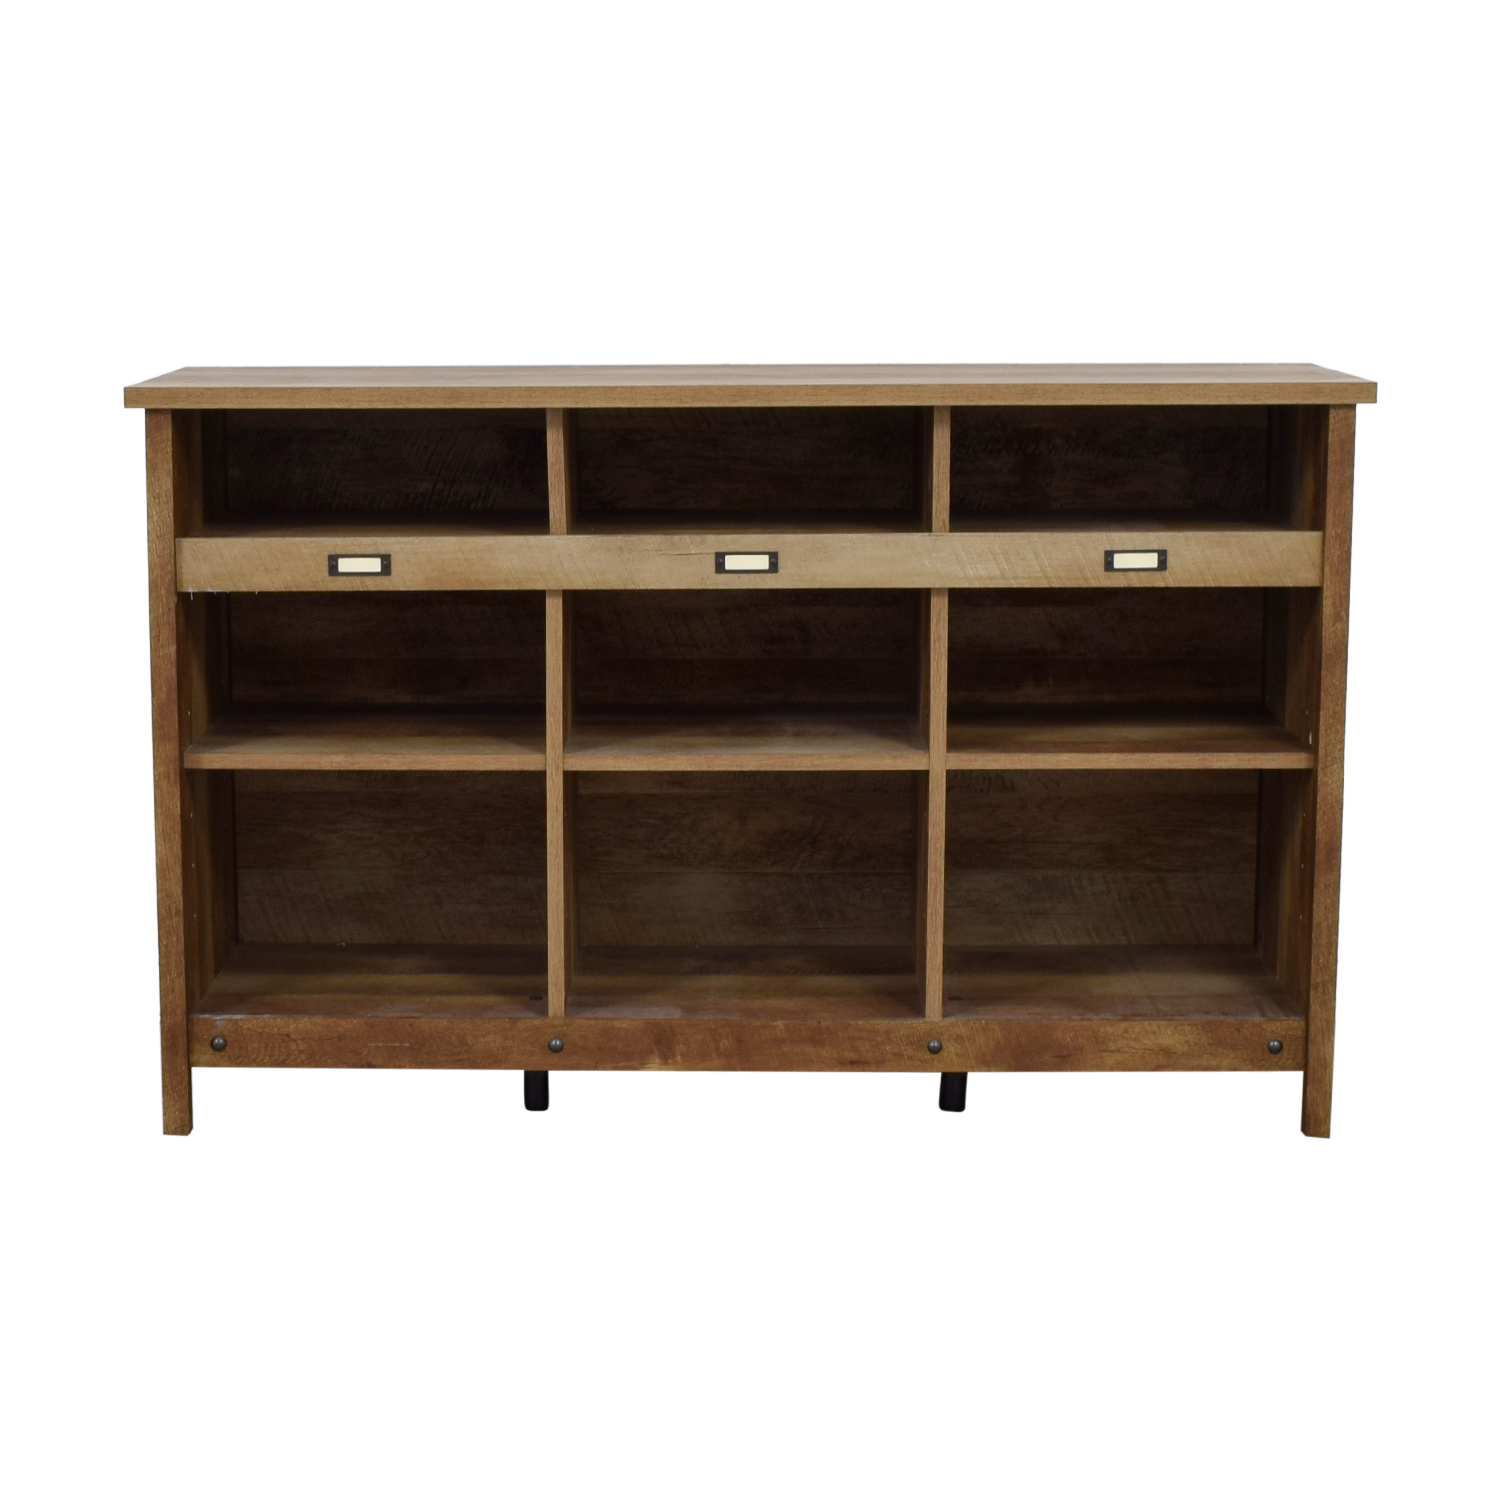 Birch Lane Birch Lane Orville Raw Wood Cube Unit Bookcase used